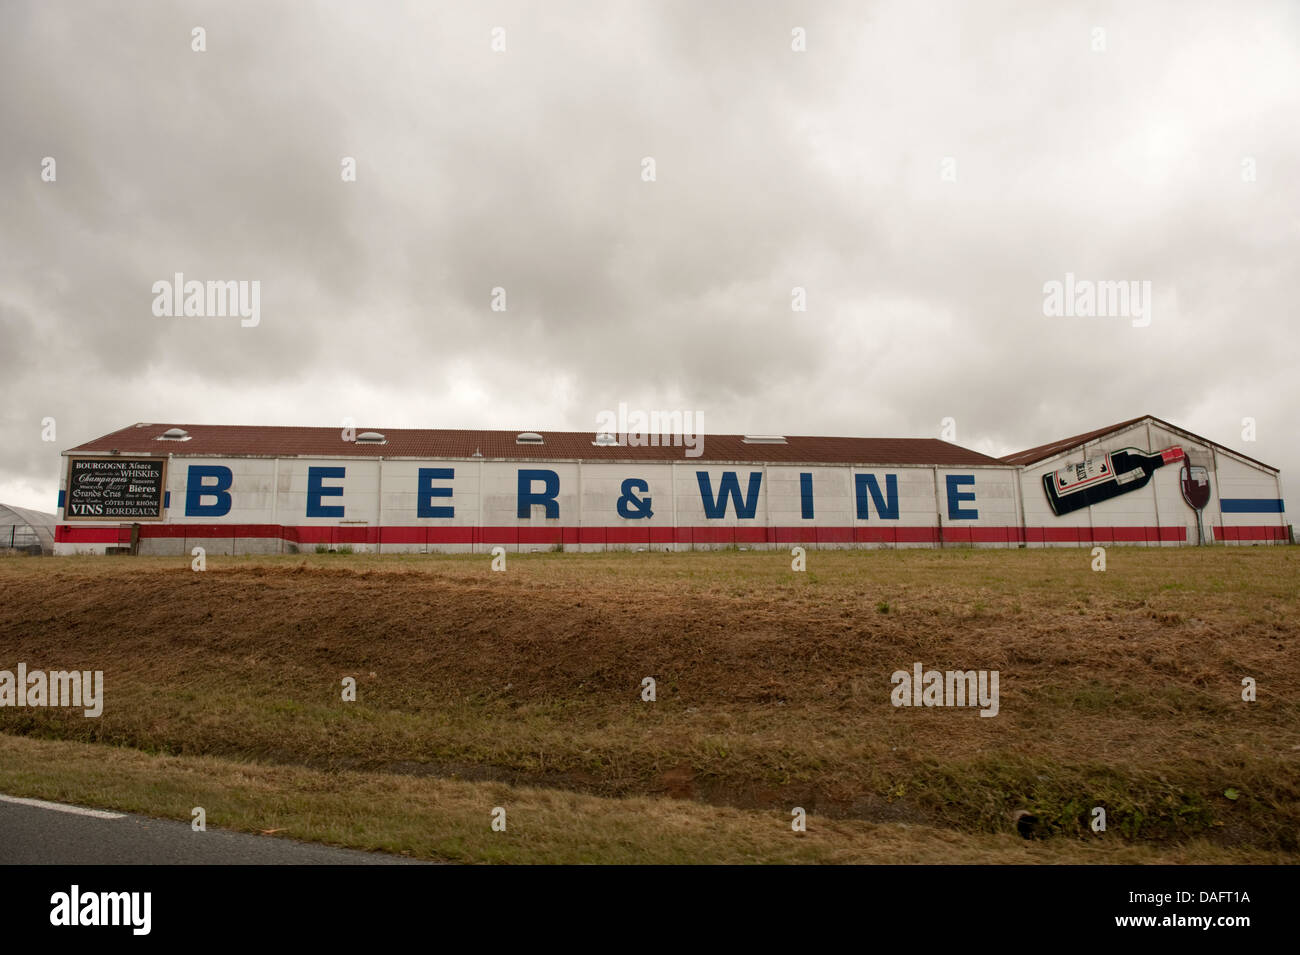 Beer & And Wine Calais France - Stock Image